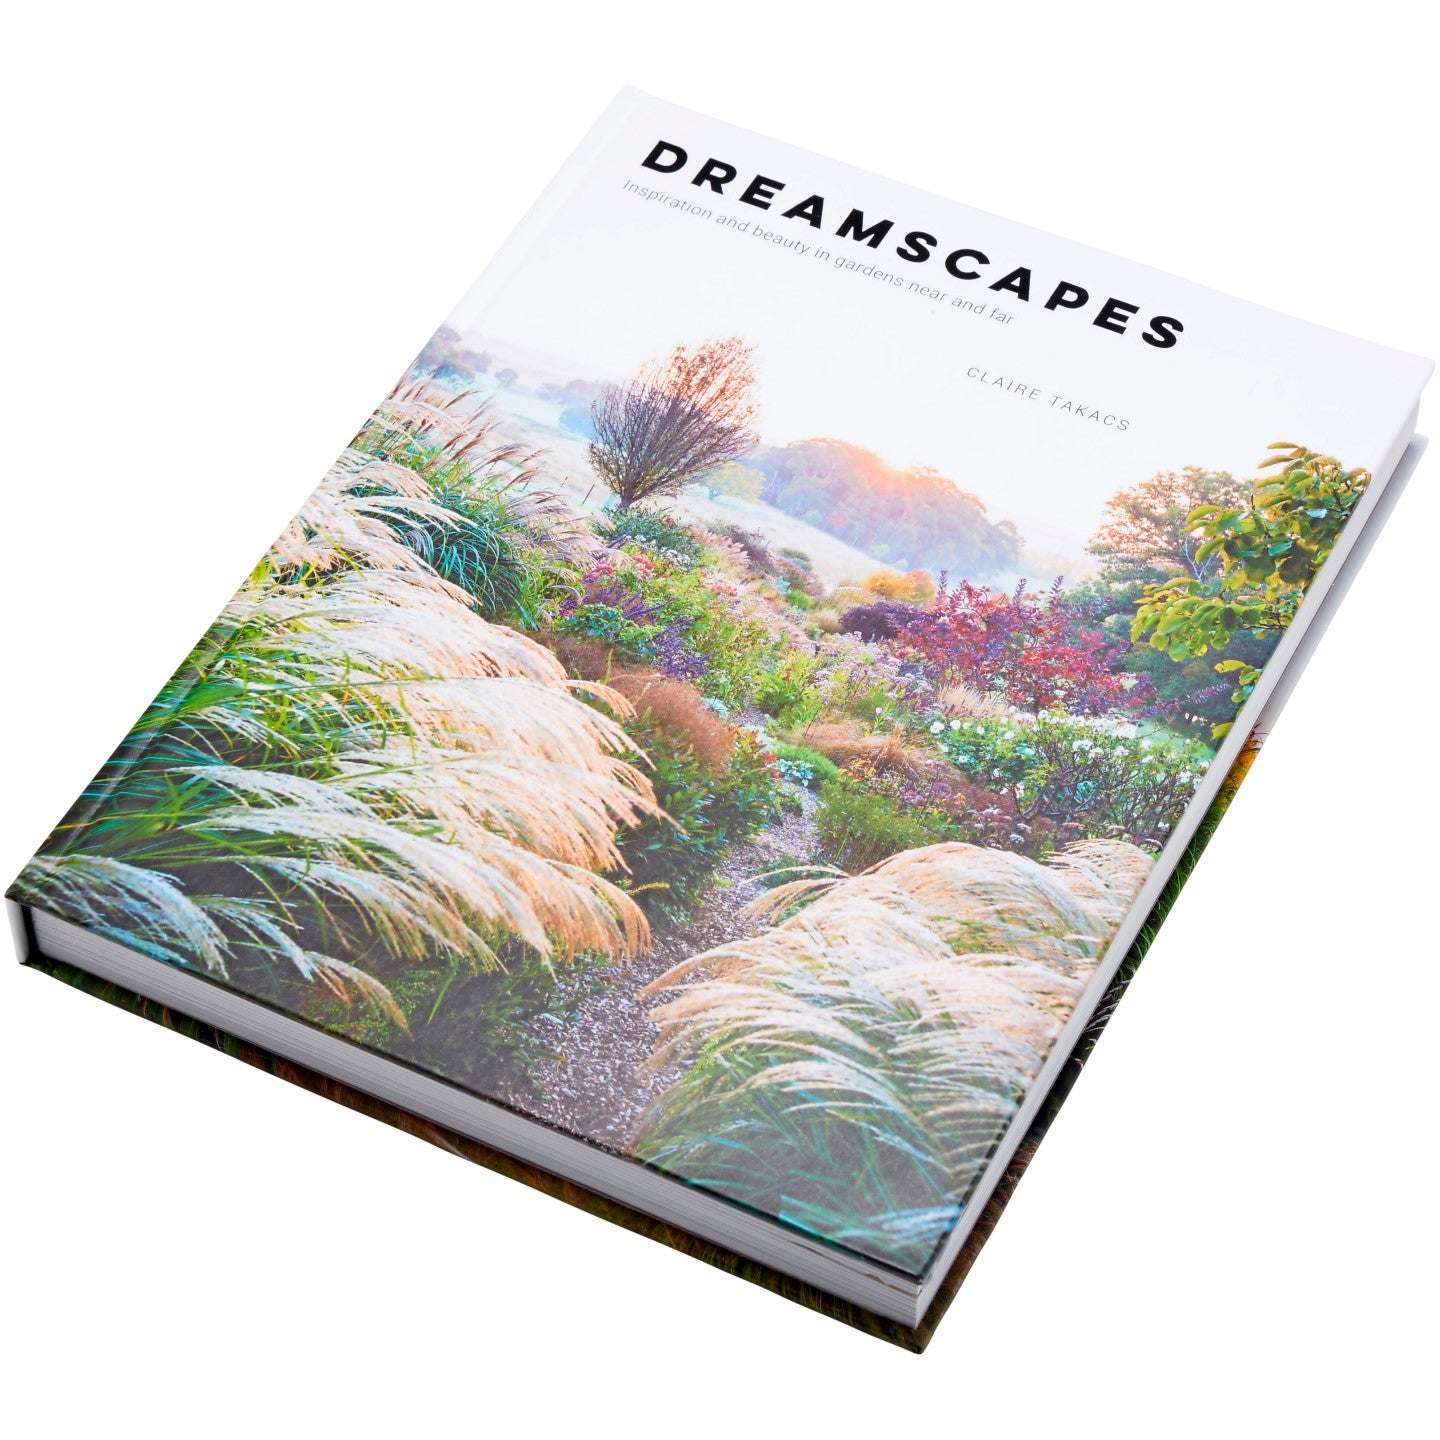 Dreamscapes